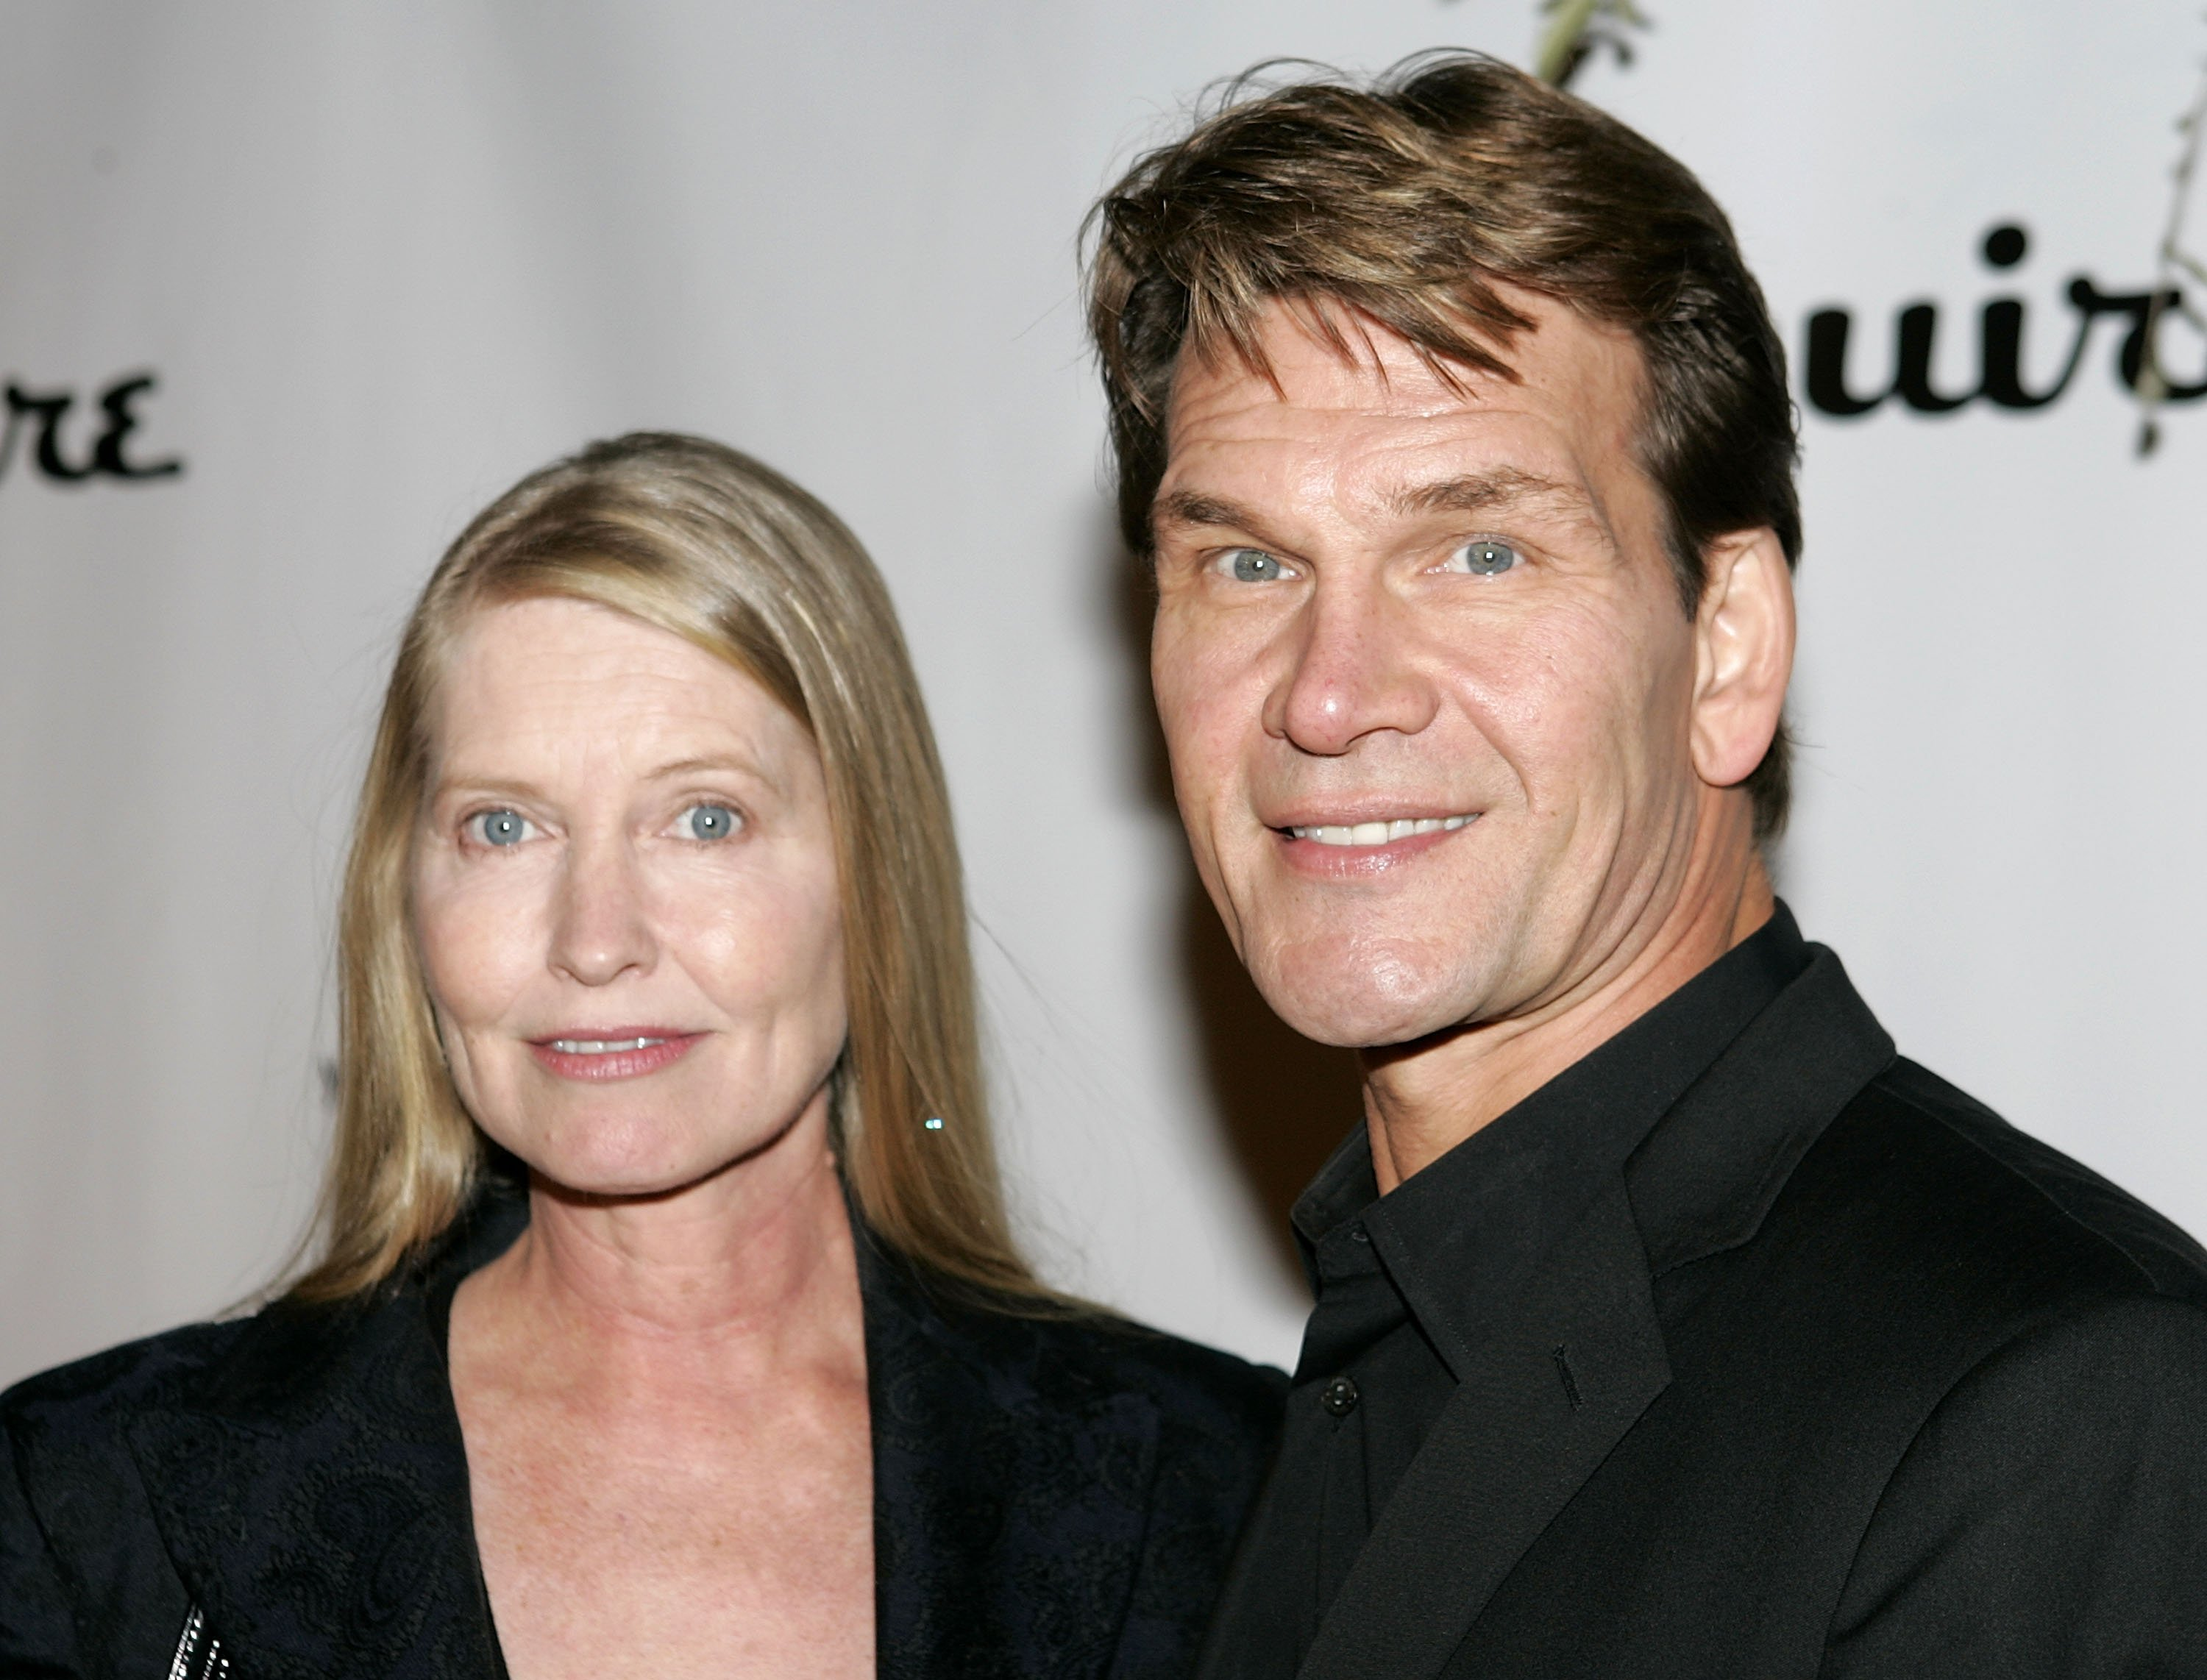 The late Patrick Swayze with his wife Lisa Niemi | Photo: Getty Images